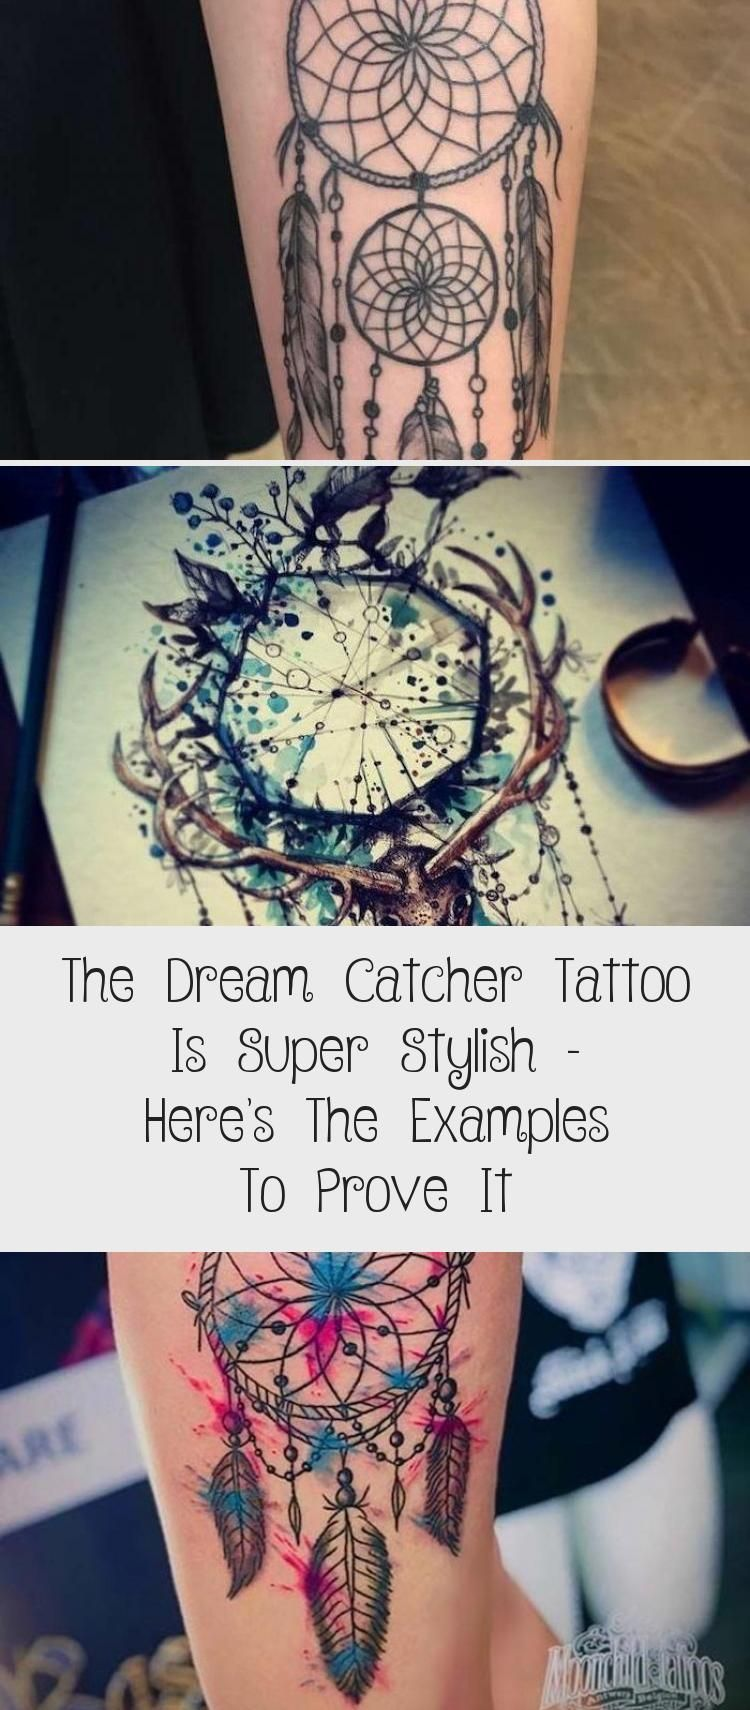 There Are So Many Different Tattoo Designs Out There But It Seems Like The Dream Catcher Tattoo Is One Of The Most Popular Ones Here A Dream Catcher Tattoo Dream